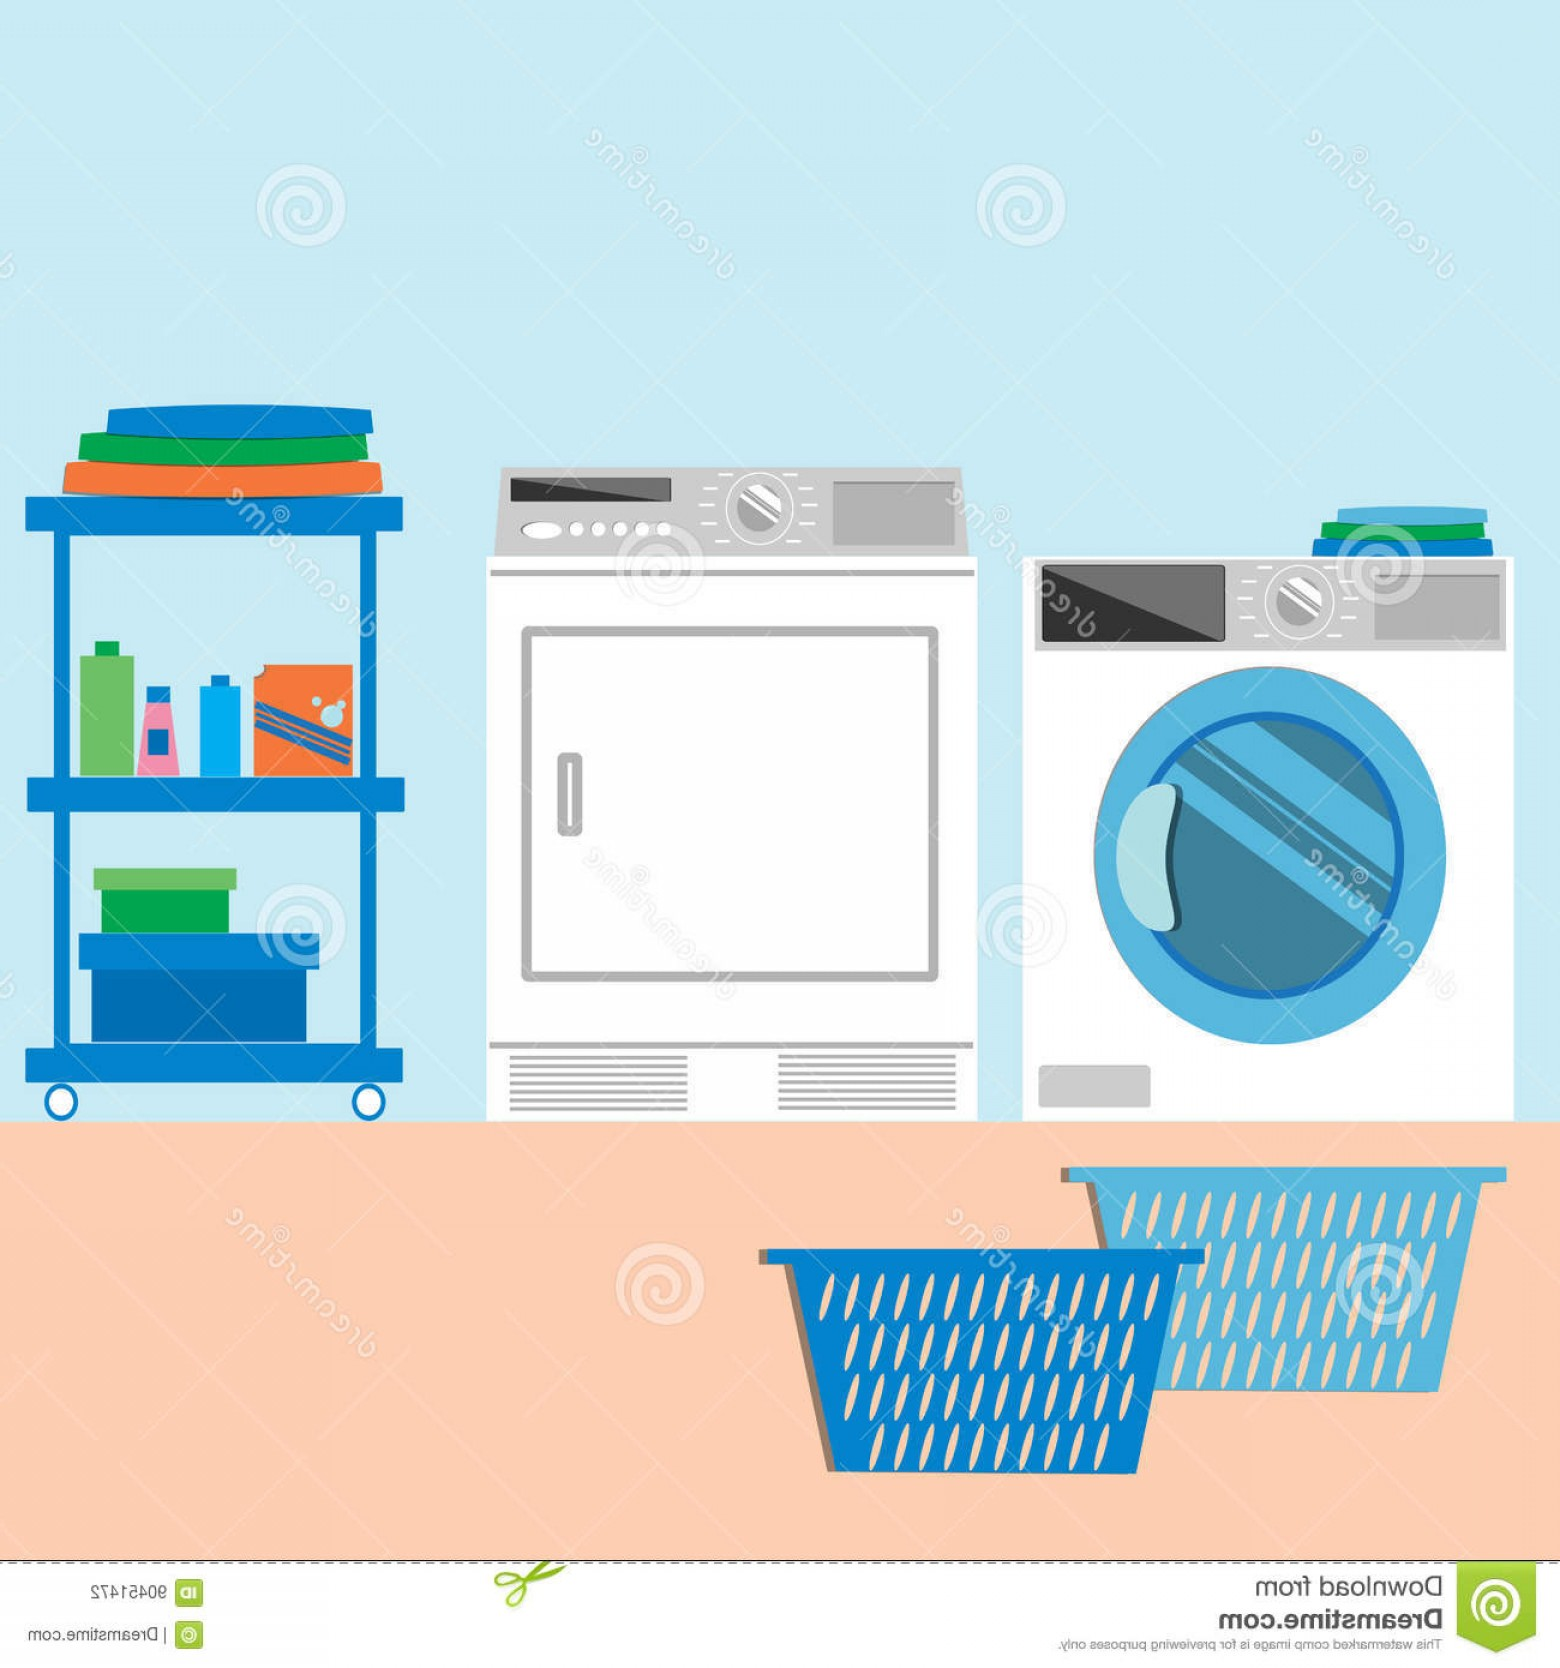 Laundry room clipart image black and white library Stock Illustration Laundry Room Flat Style Vector Illustration ... image black and white library